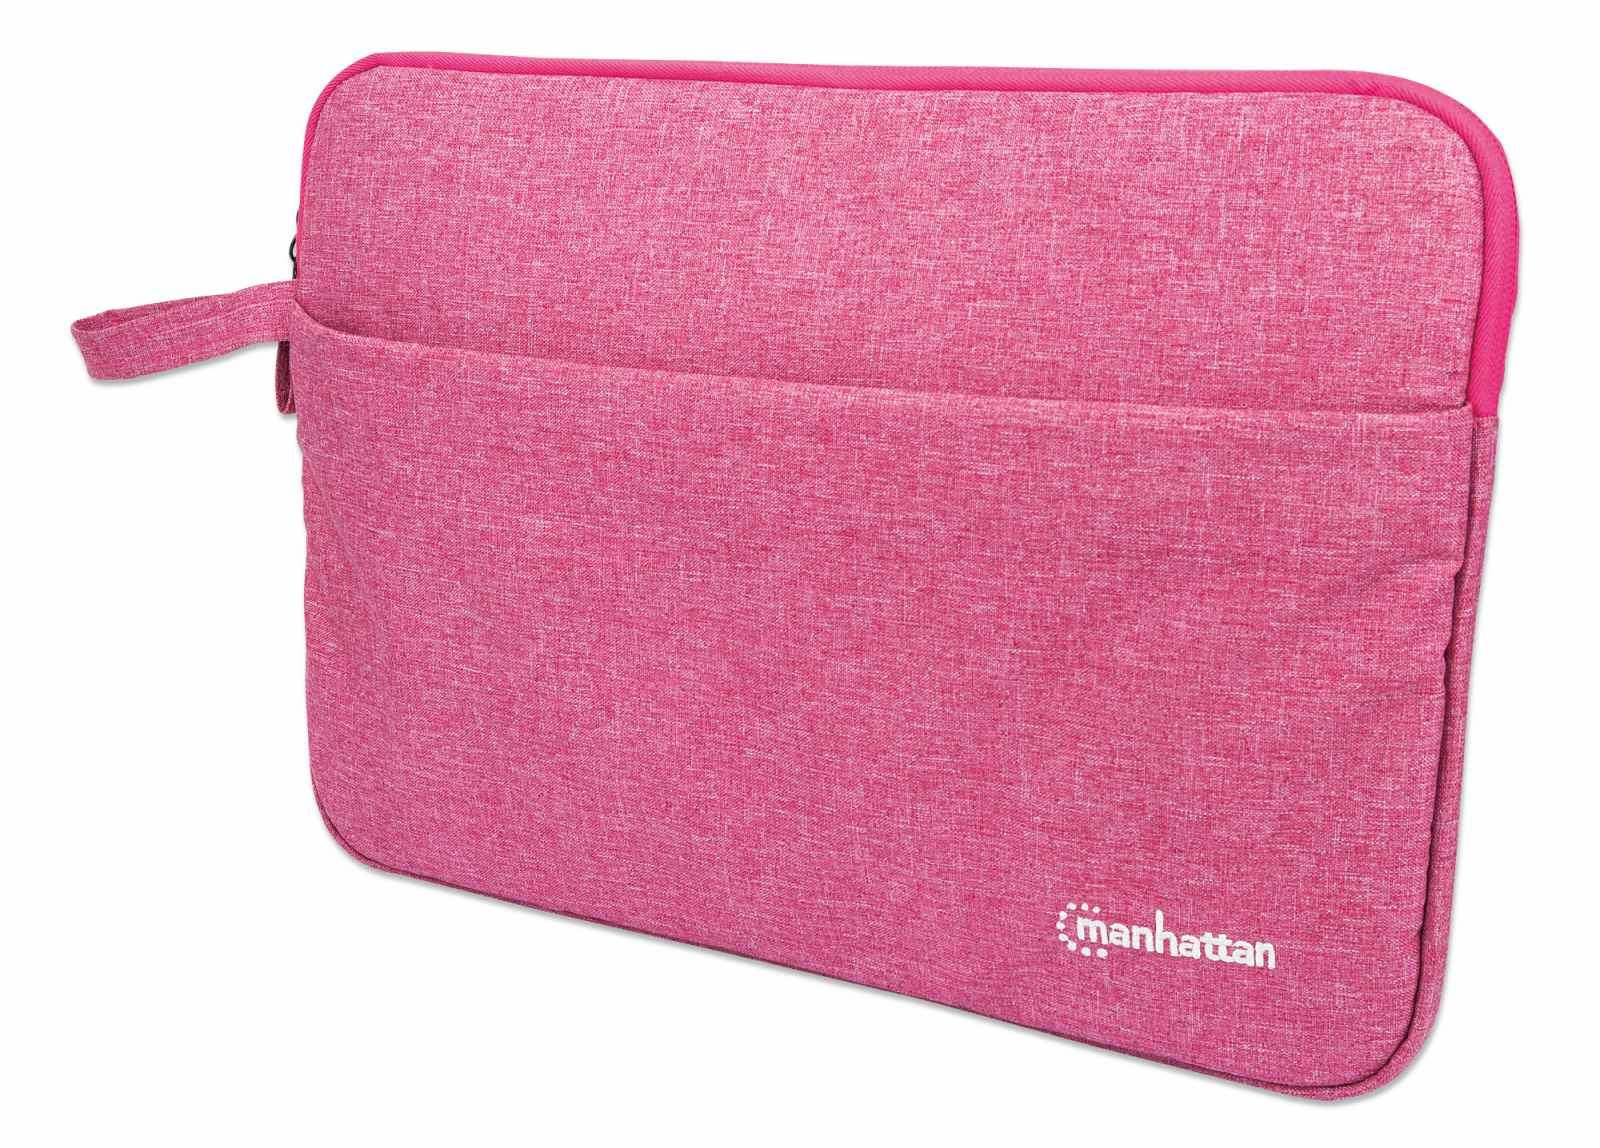 """Manhattan Seattle Laptop Sleeve 14.5"""", Coral, Padded, Extra Soft Internal Cushioning, Main Compartment with double zips, Zippered Front Pocket, Carry Loop, Water Resistant and Durable"""